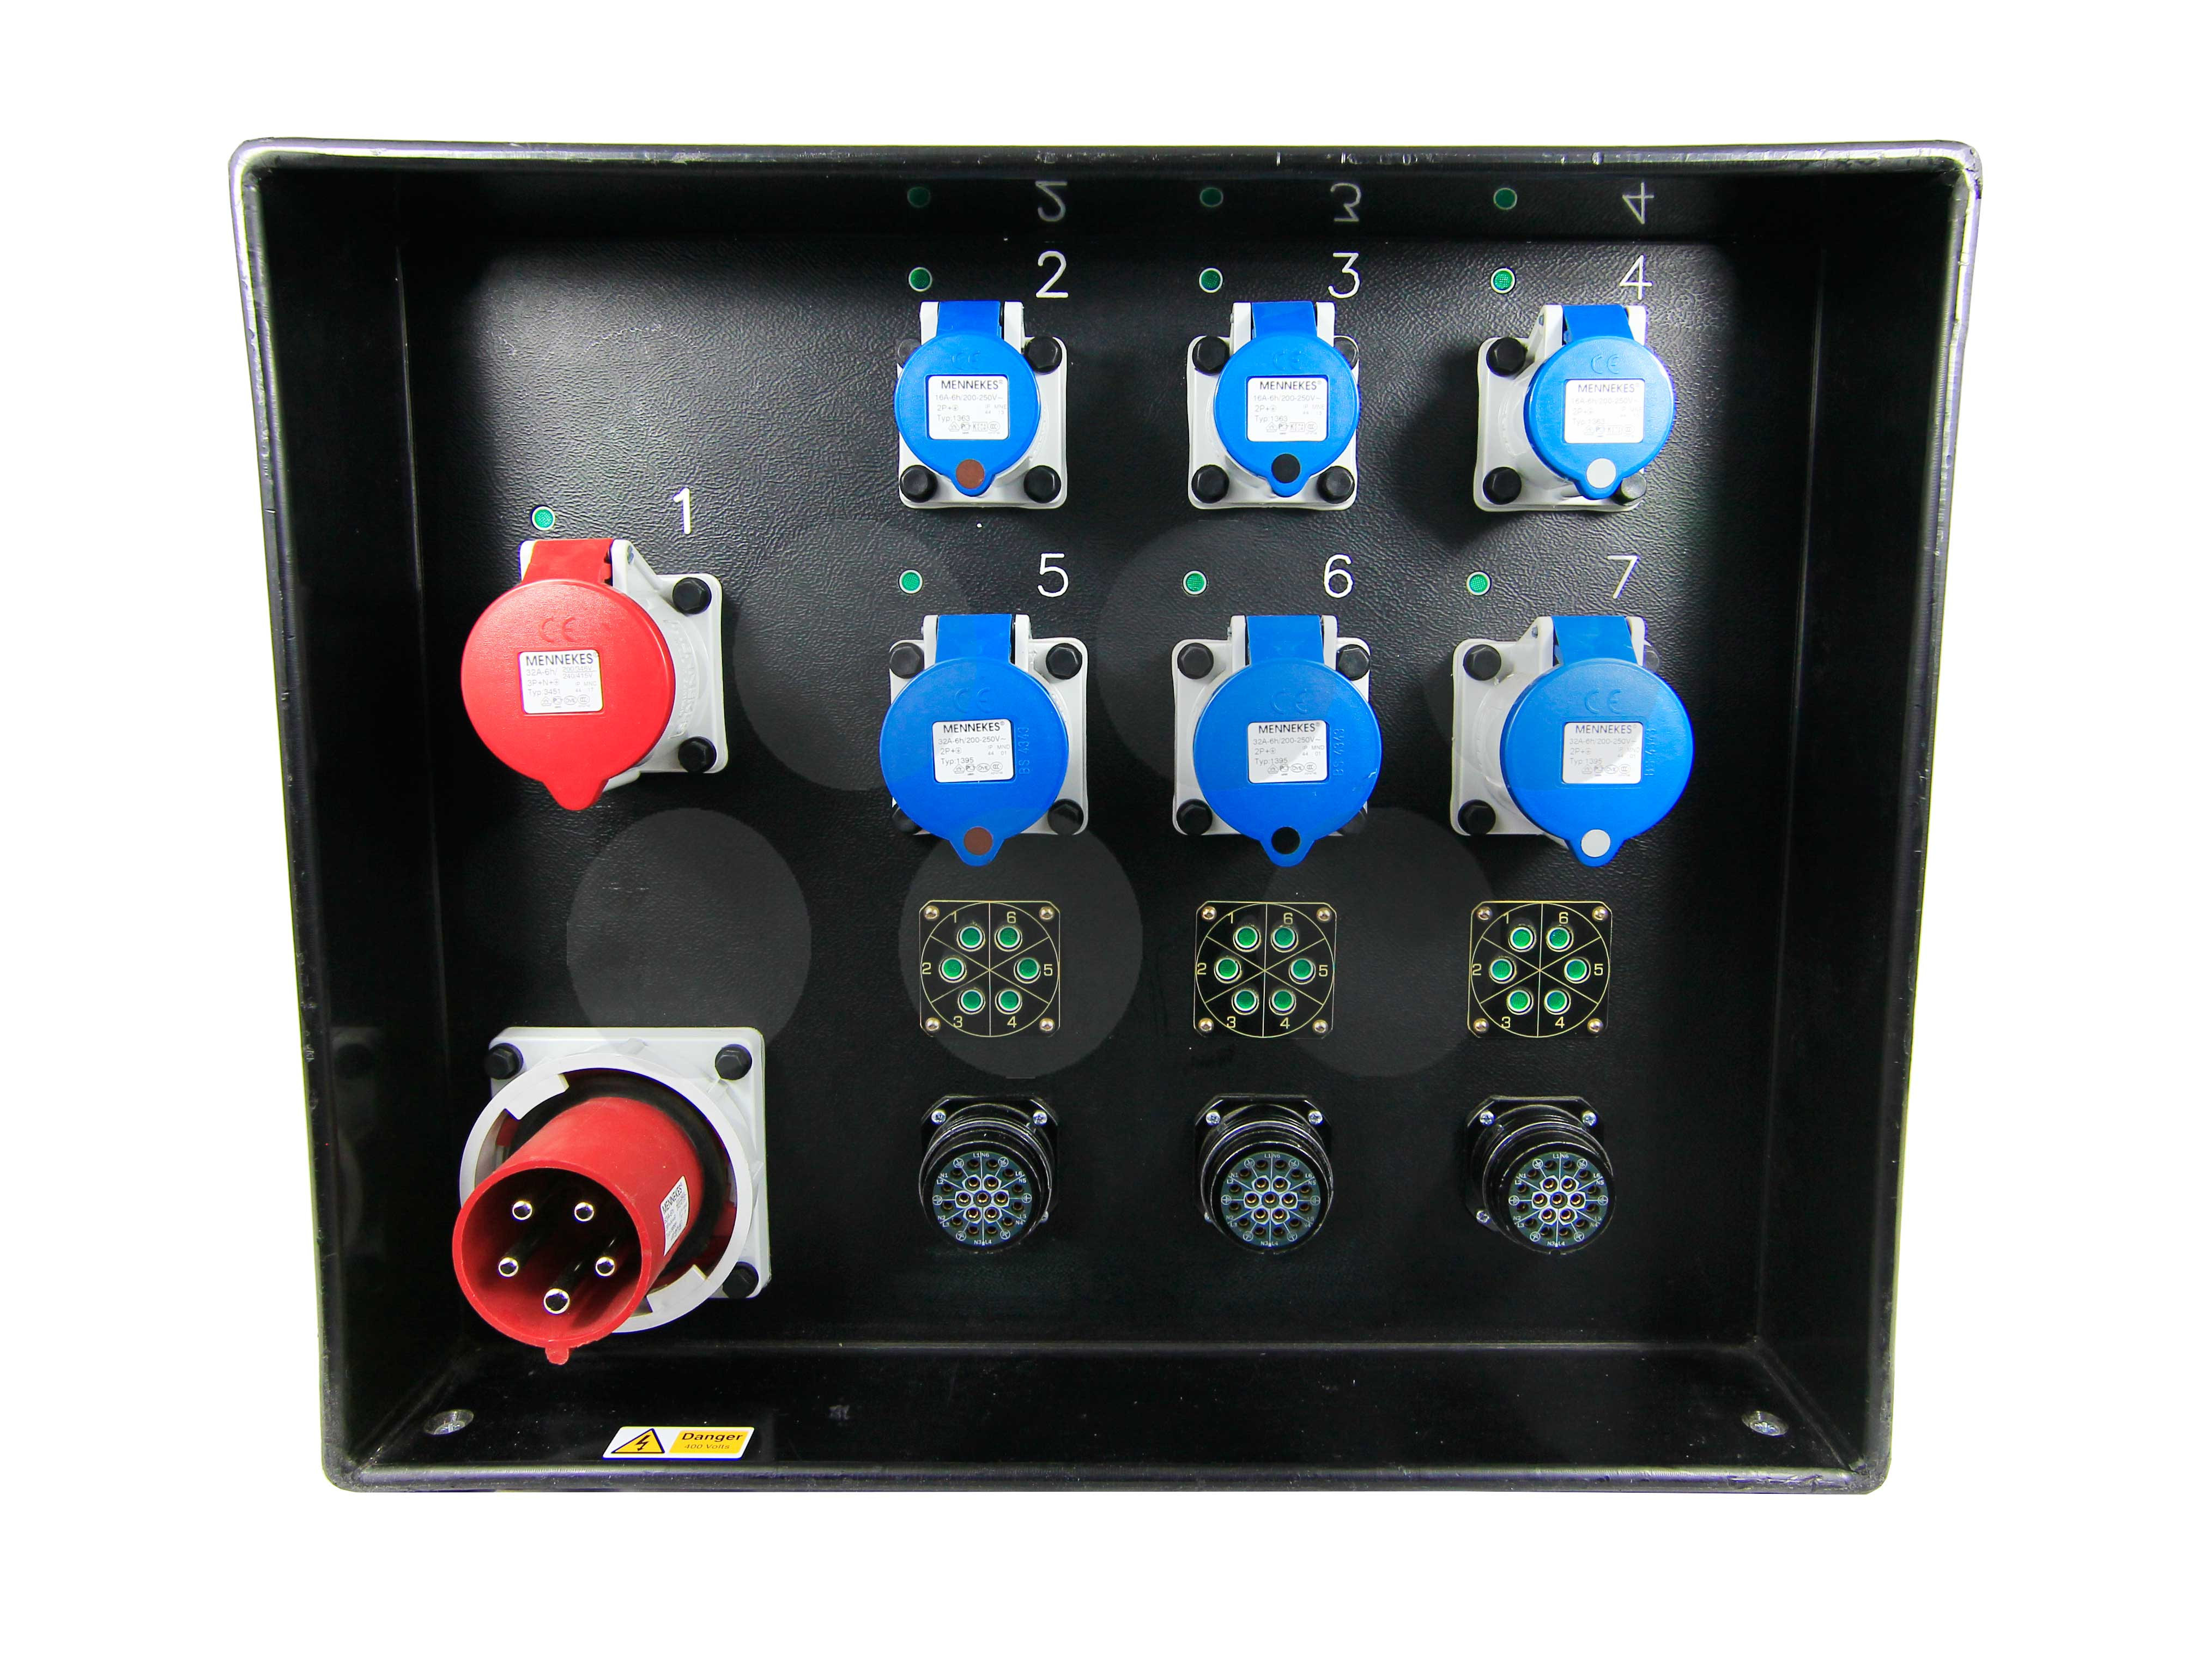 63A 3ph Distro - 3 x Soca, 1 x 32A 3ph, 3 x 32A, 3 x 16A - LED PDU